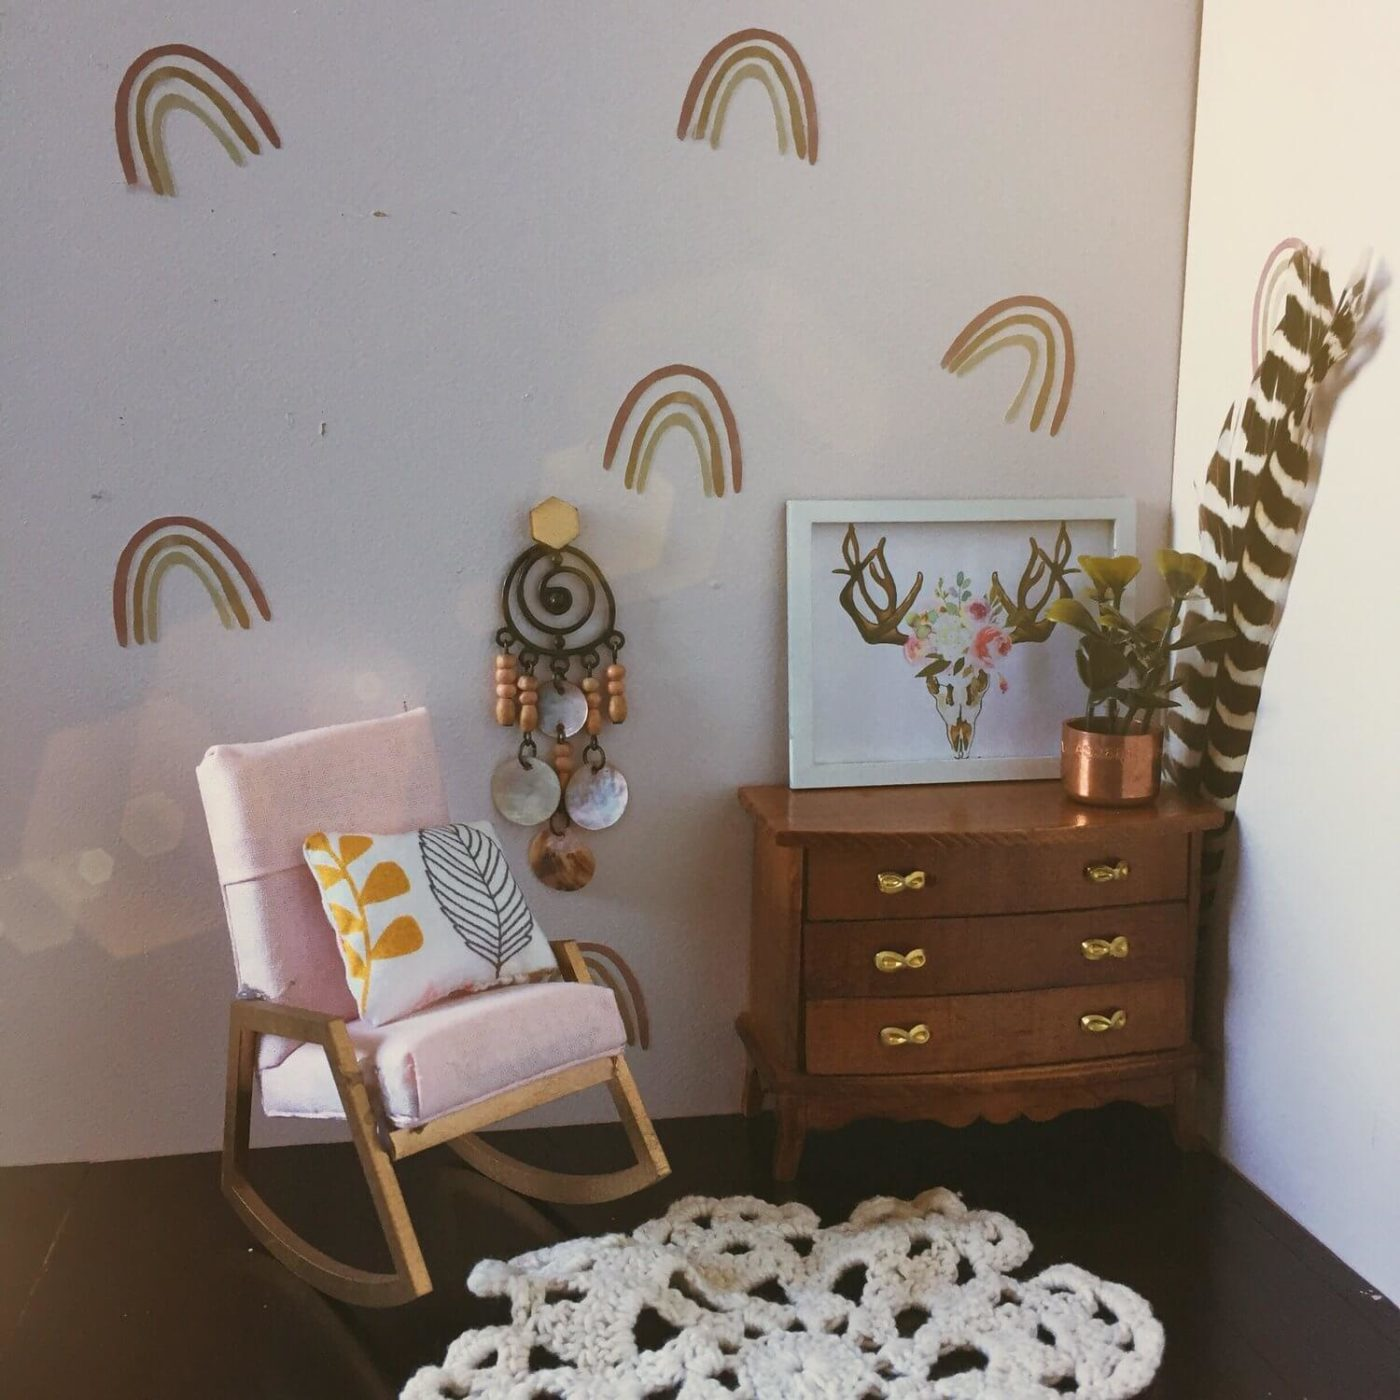 A close up of mini rainbow wall decals in a doll's house.